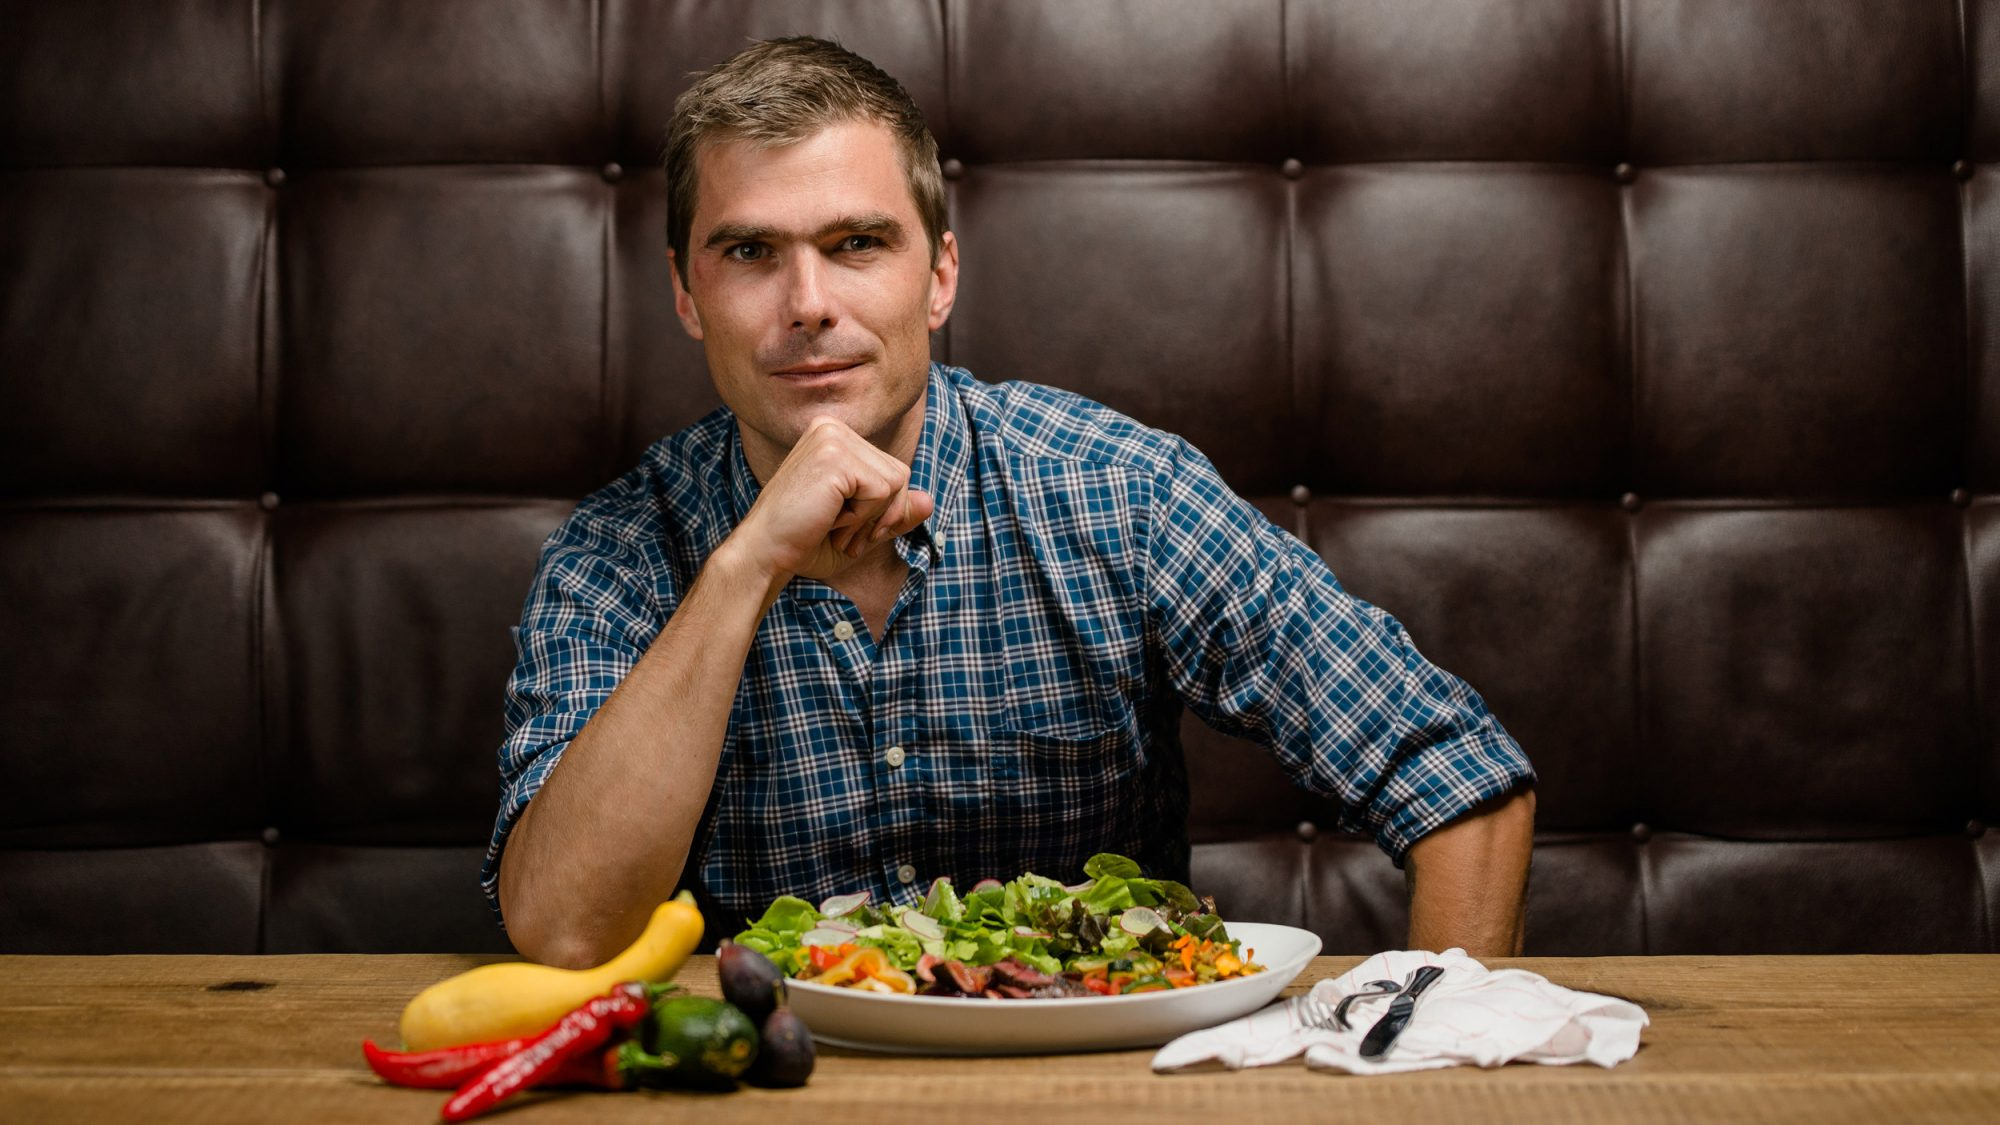 Hugh Acheson Wants to Make Sure No Kid Goes Hungry